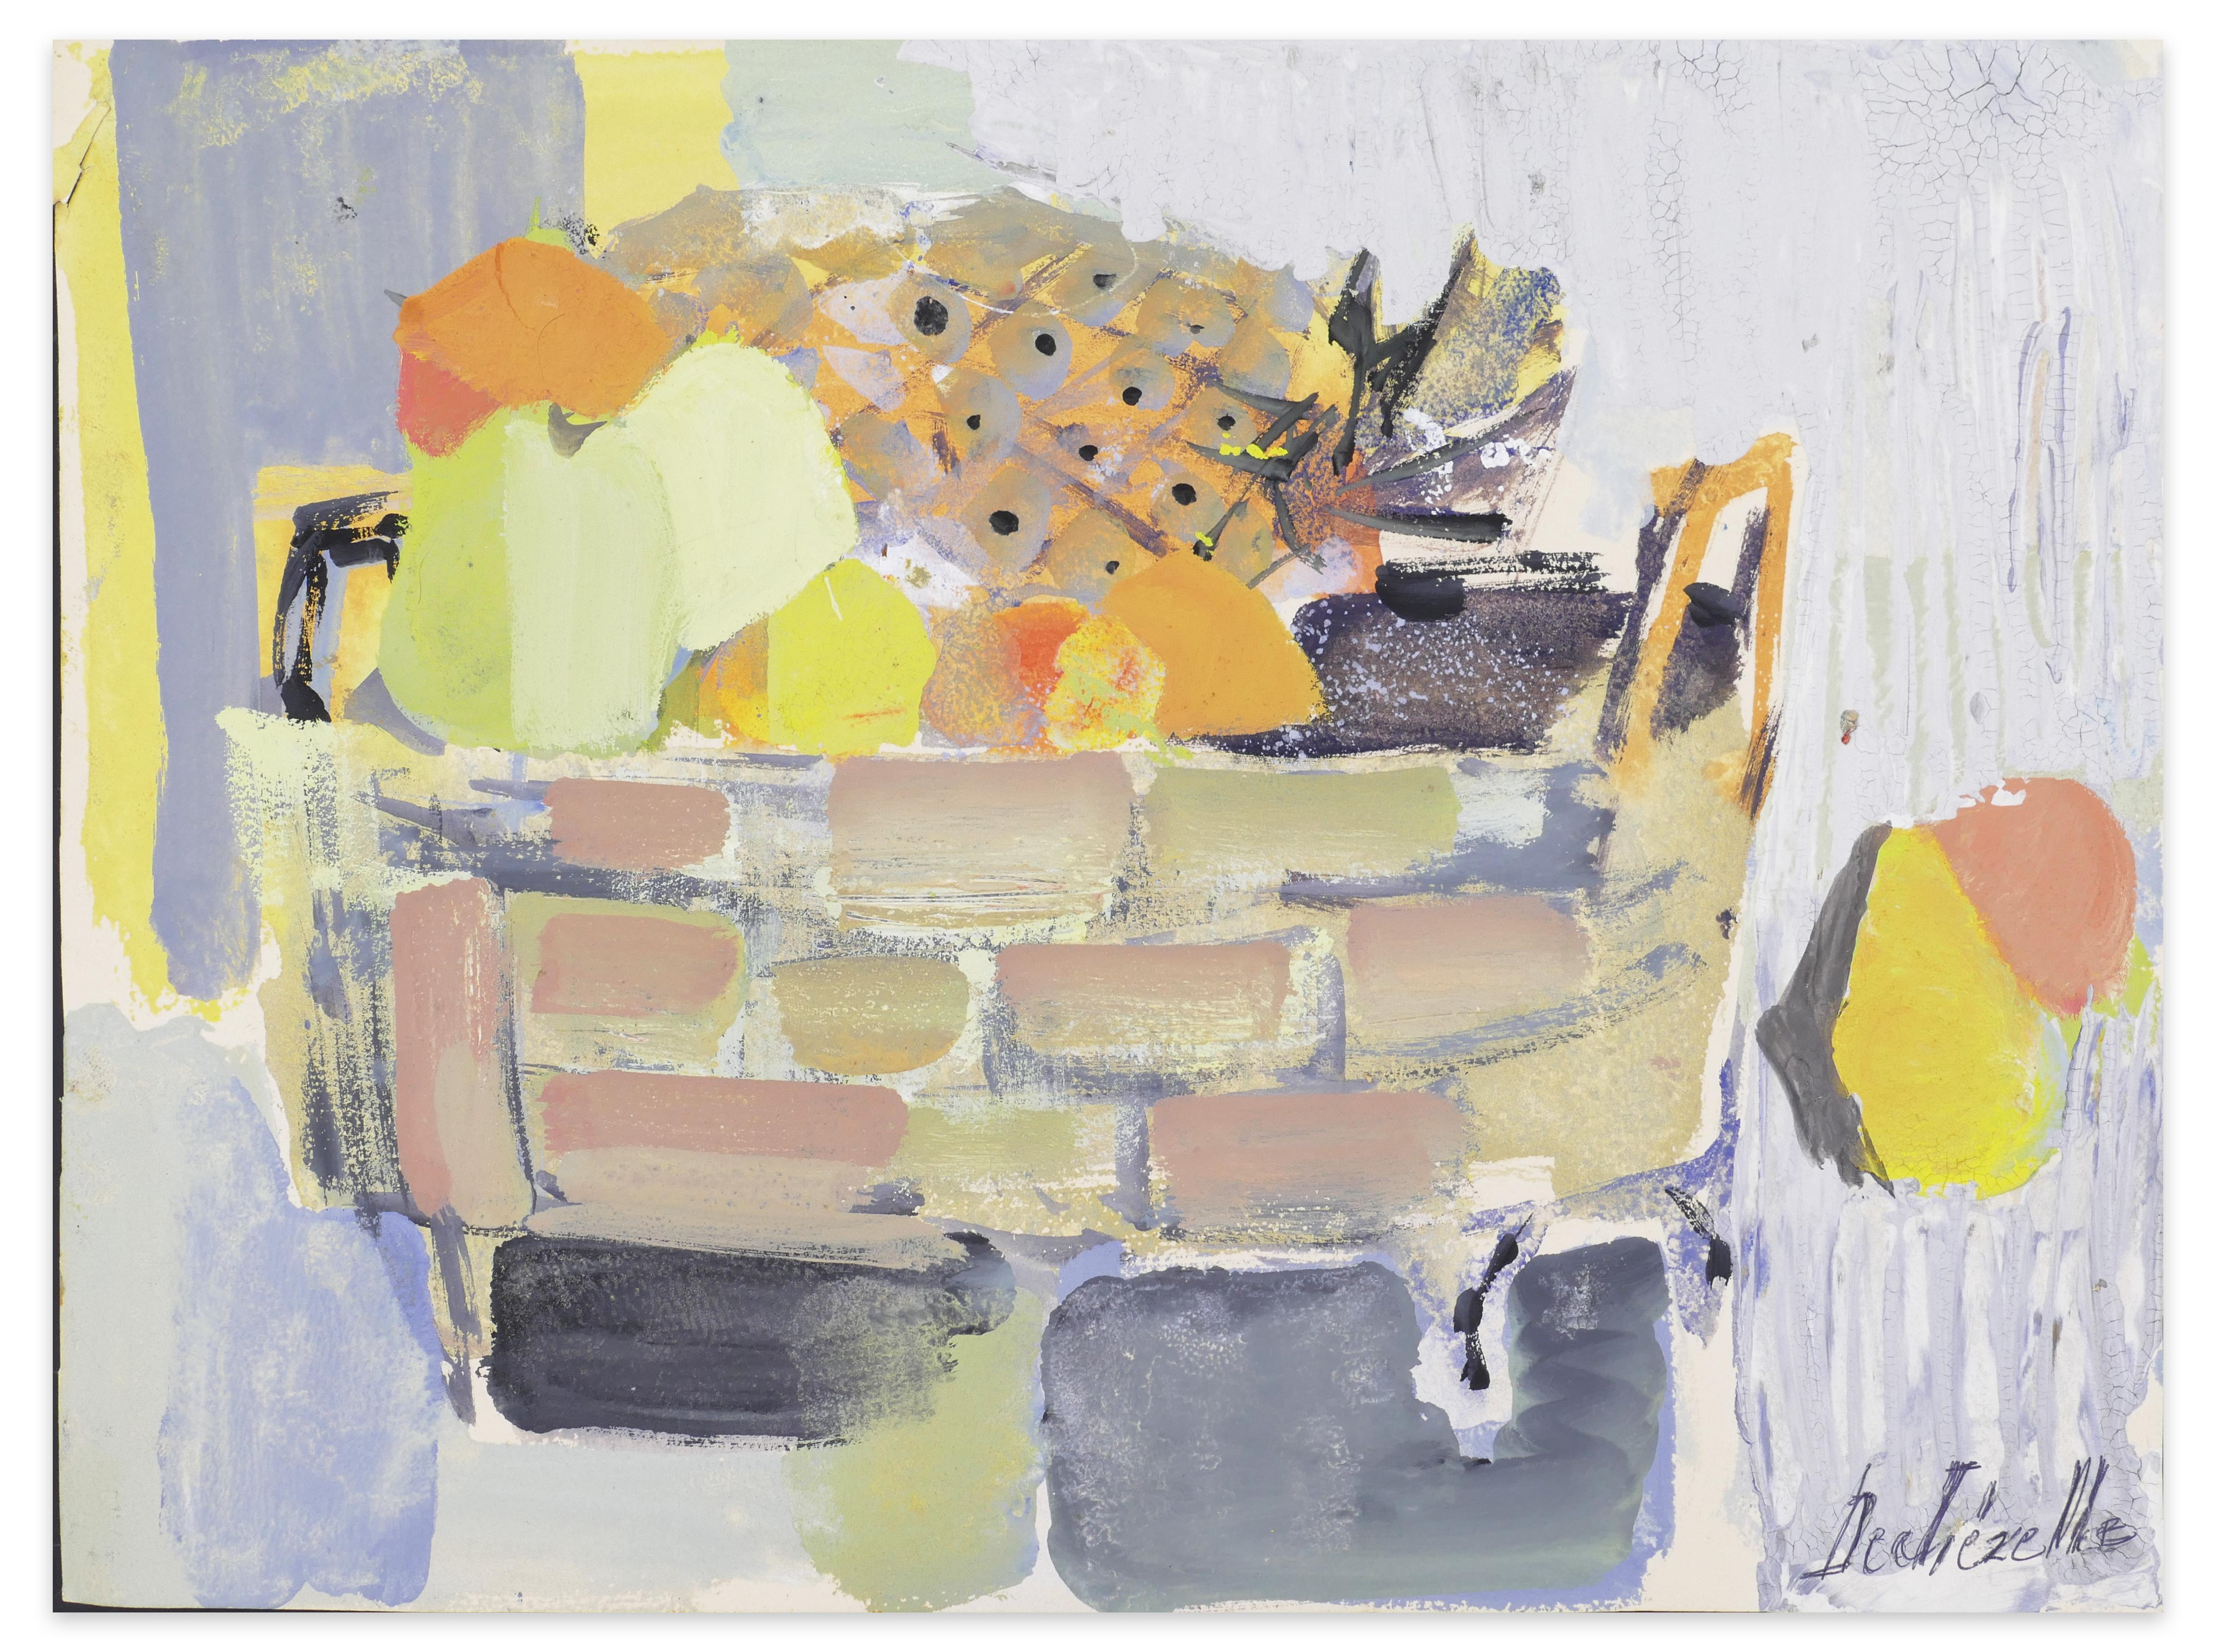 Still Life - Acrylic Painting on Canson Paper by C. Dechezelle - 1970s